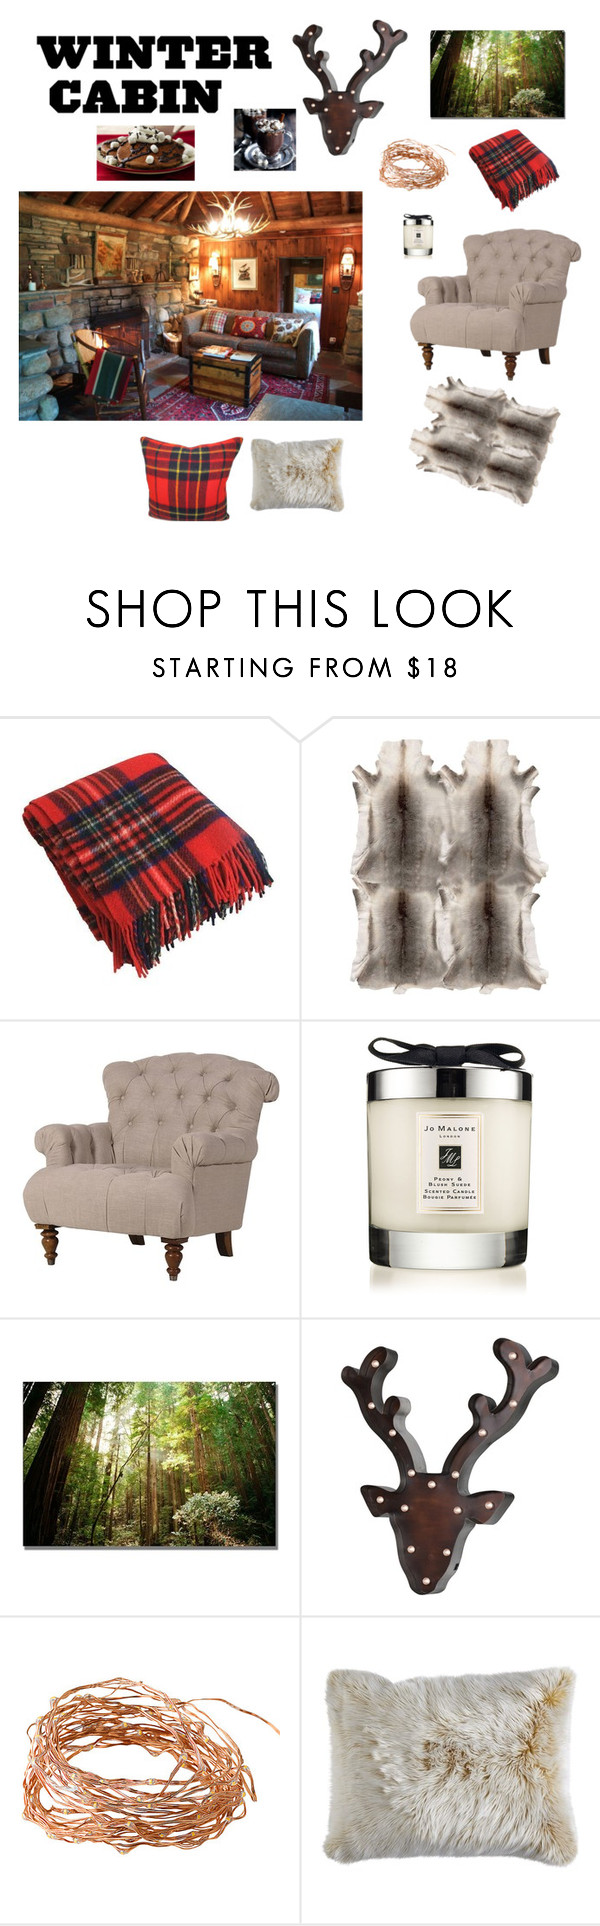 """Cabin in the woods"" by la-gatta-sul-tetto ❤ liked on Polyvore featuring interior, interiors, interior design, home, home decor, interior decorating, Visionnaire, Jo Malone, Trademark Fine Art and Pier 1 Imports"